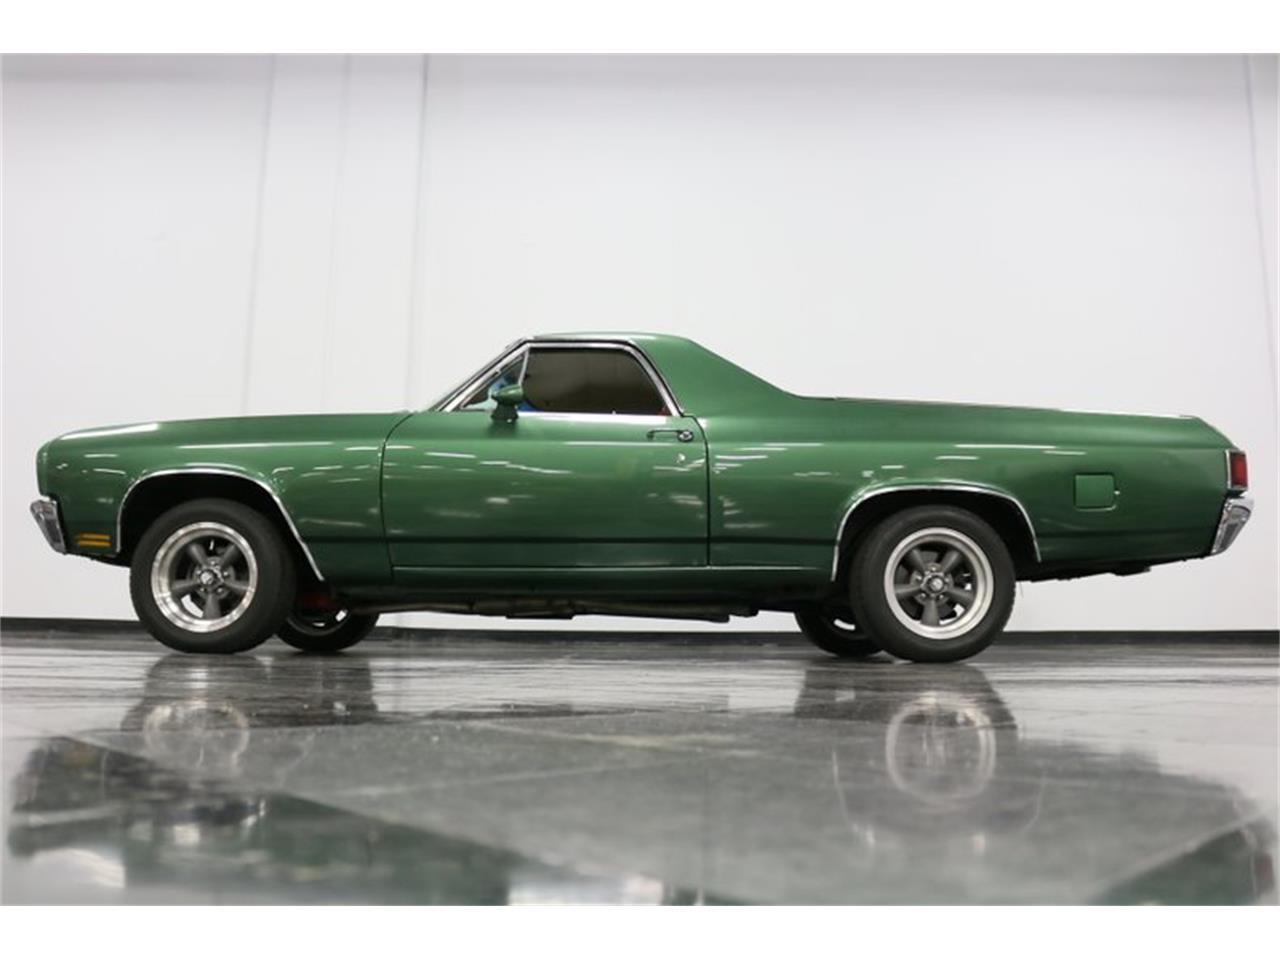 Large Picture of 1970 Chevrolet El Camino located in Texas - $24,995.00 Offered by Streetside Classics - Dallas / Fort Worth - Q9DT